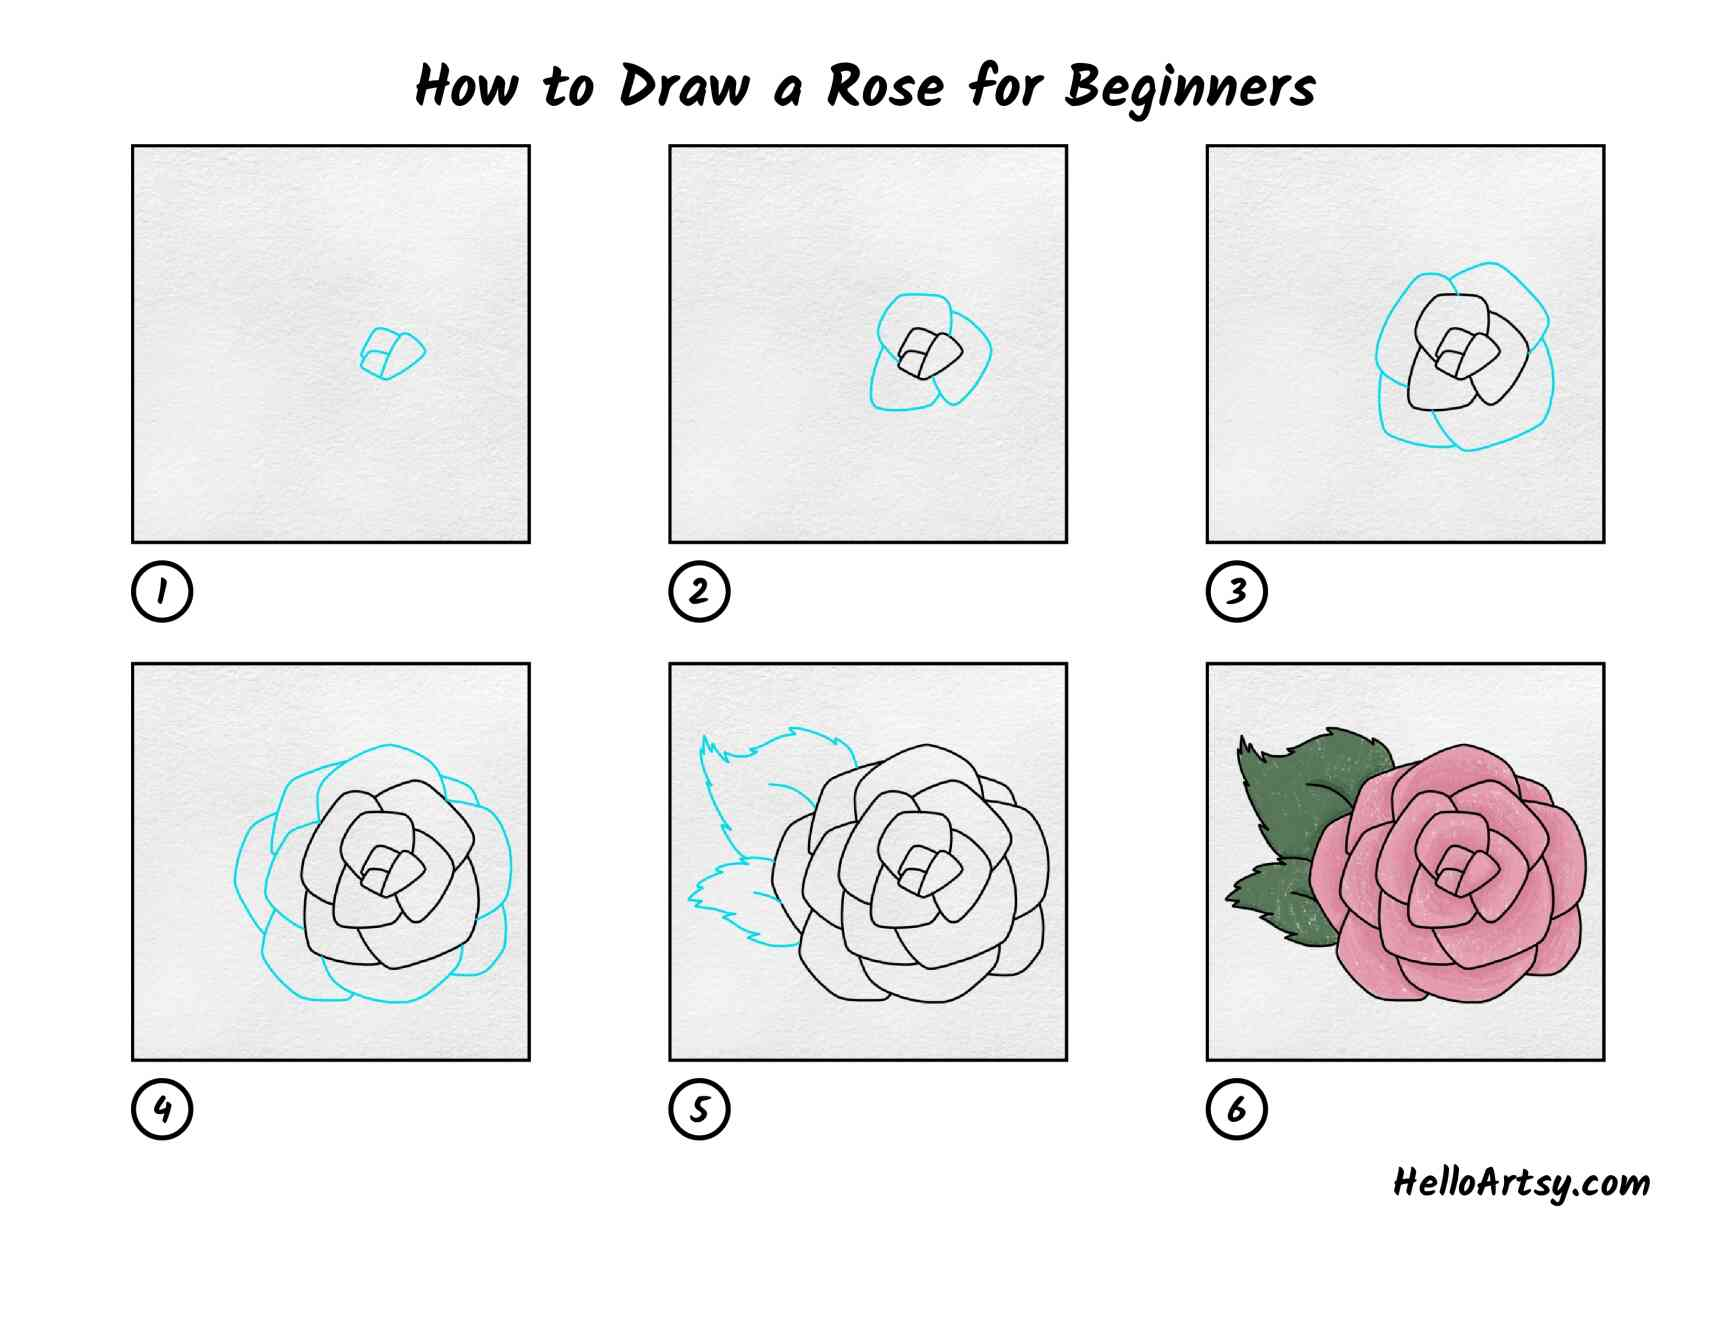 How To Draw A Rose For Beginners: All Steps